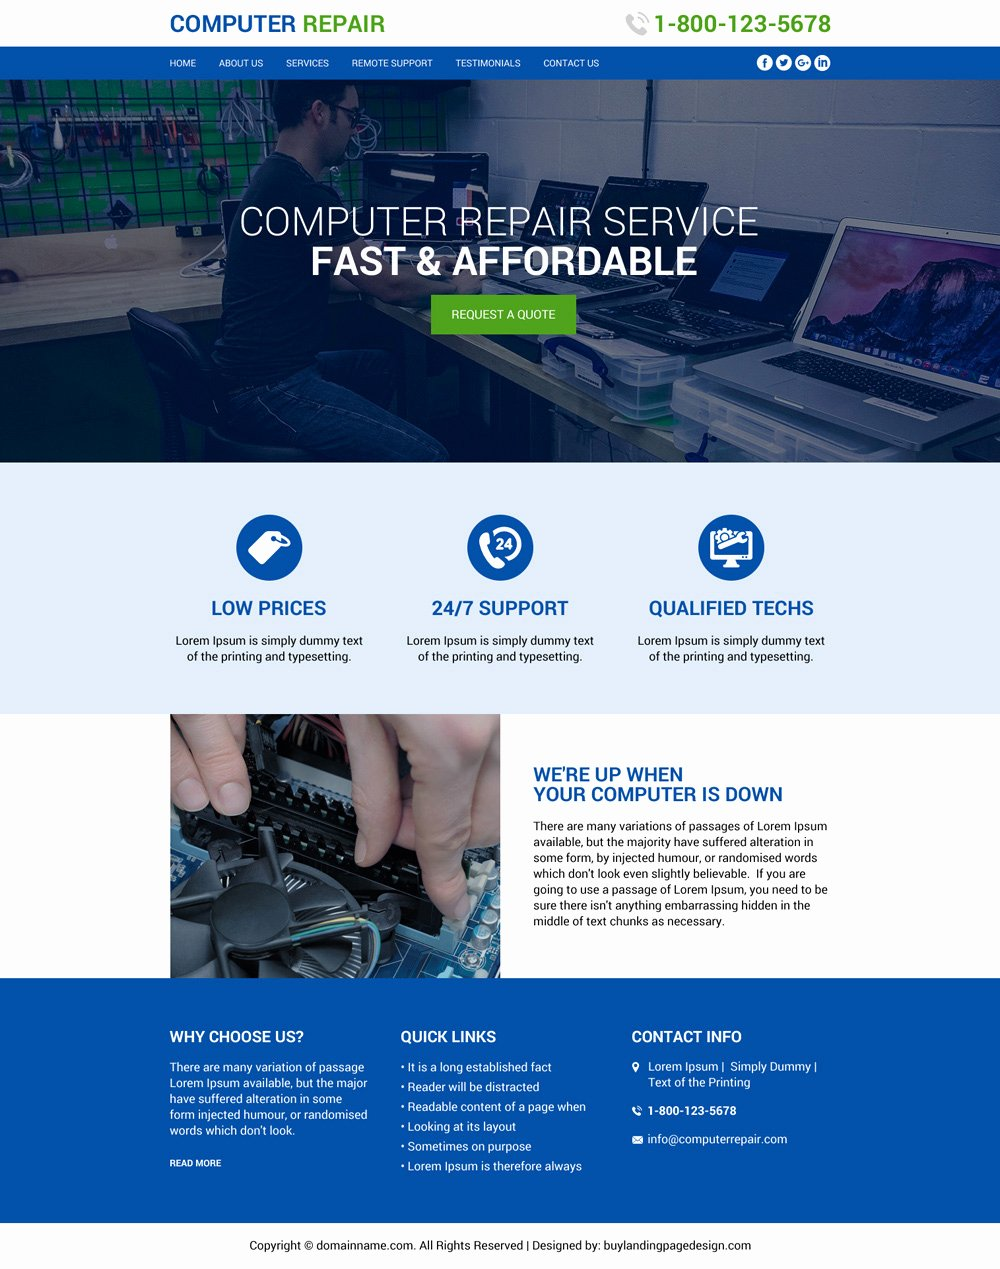 Computer Repair Website Template Inspirational Puter Repair Service Best Website Design